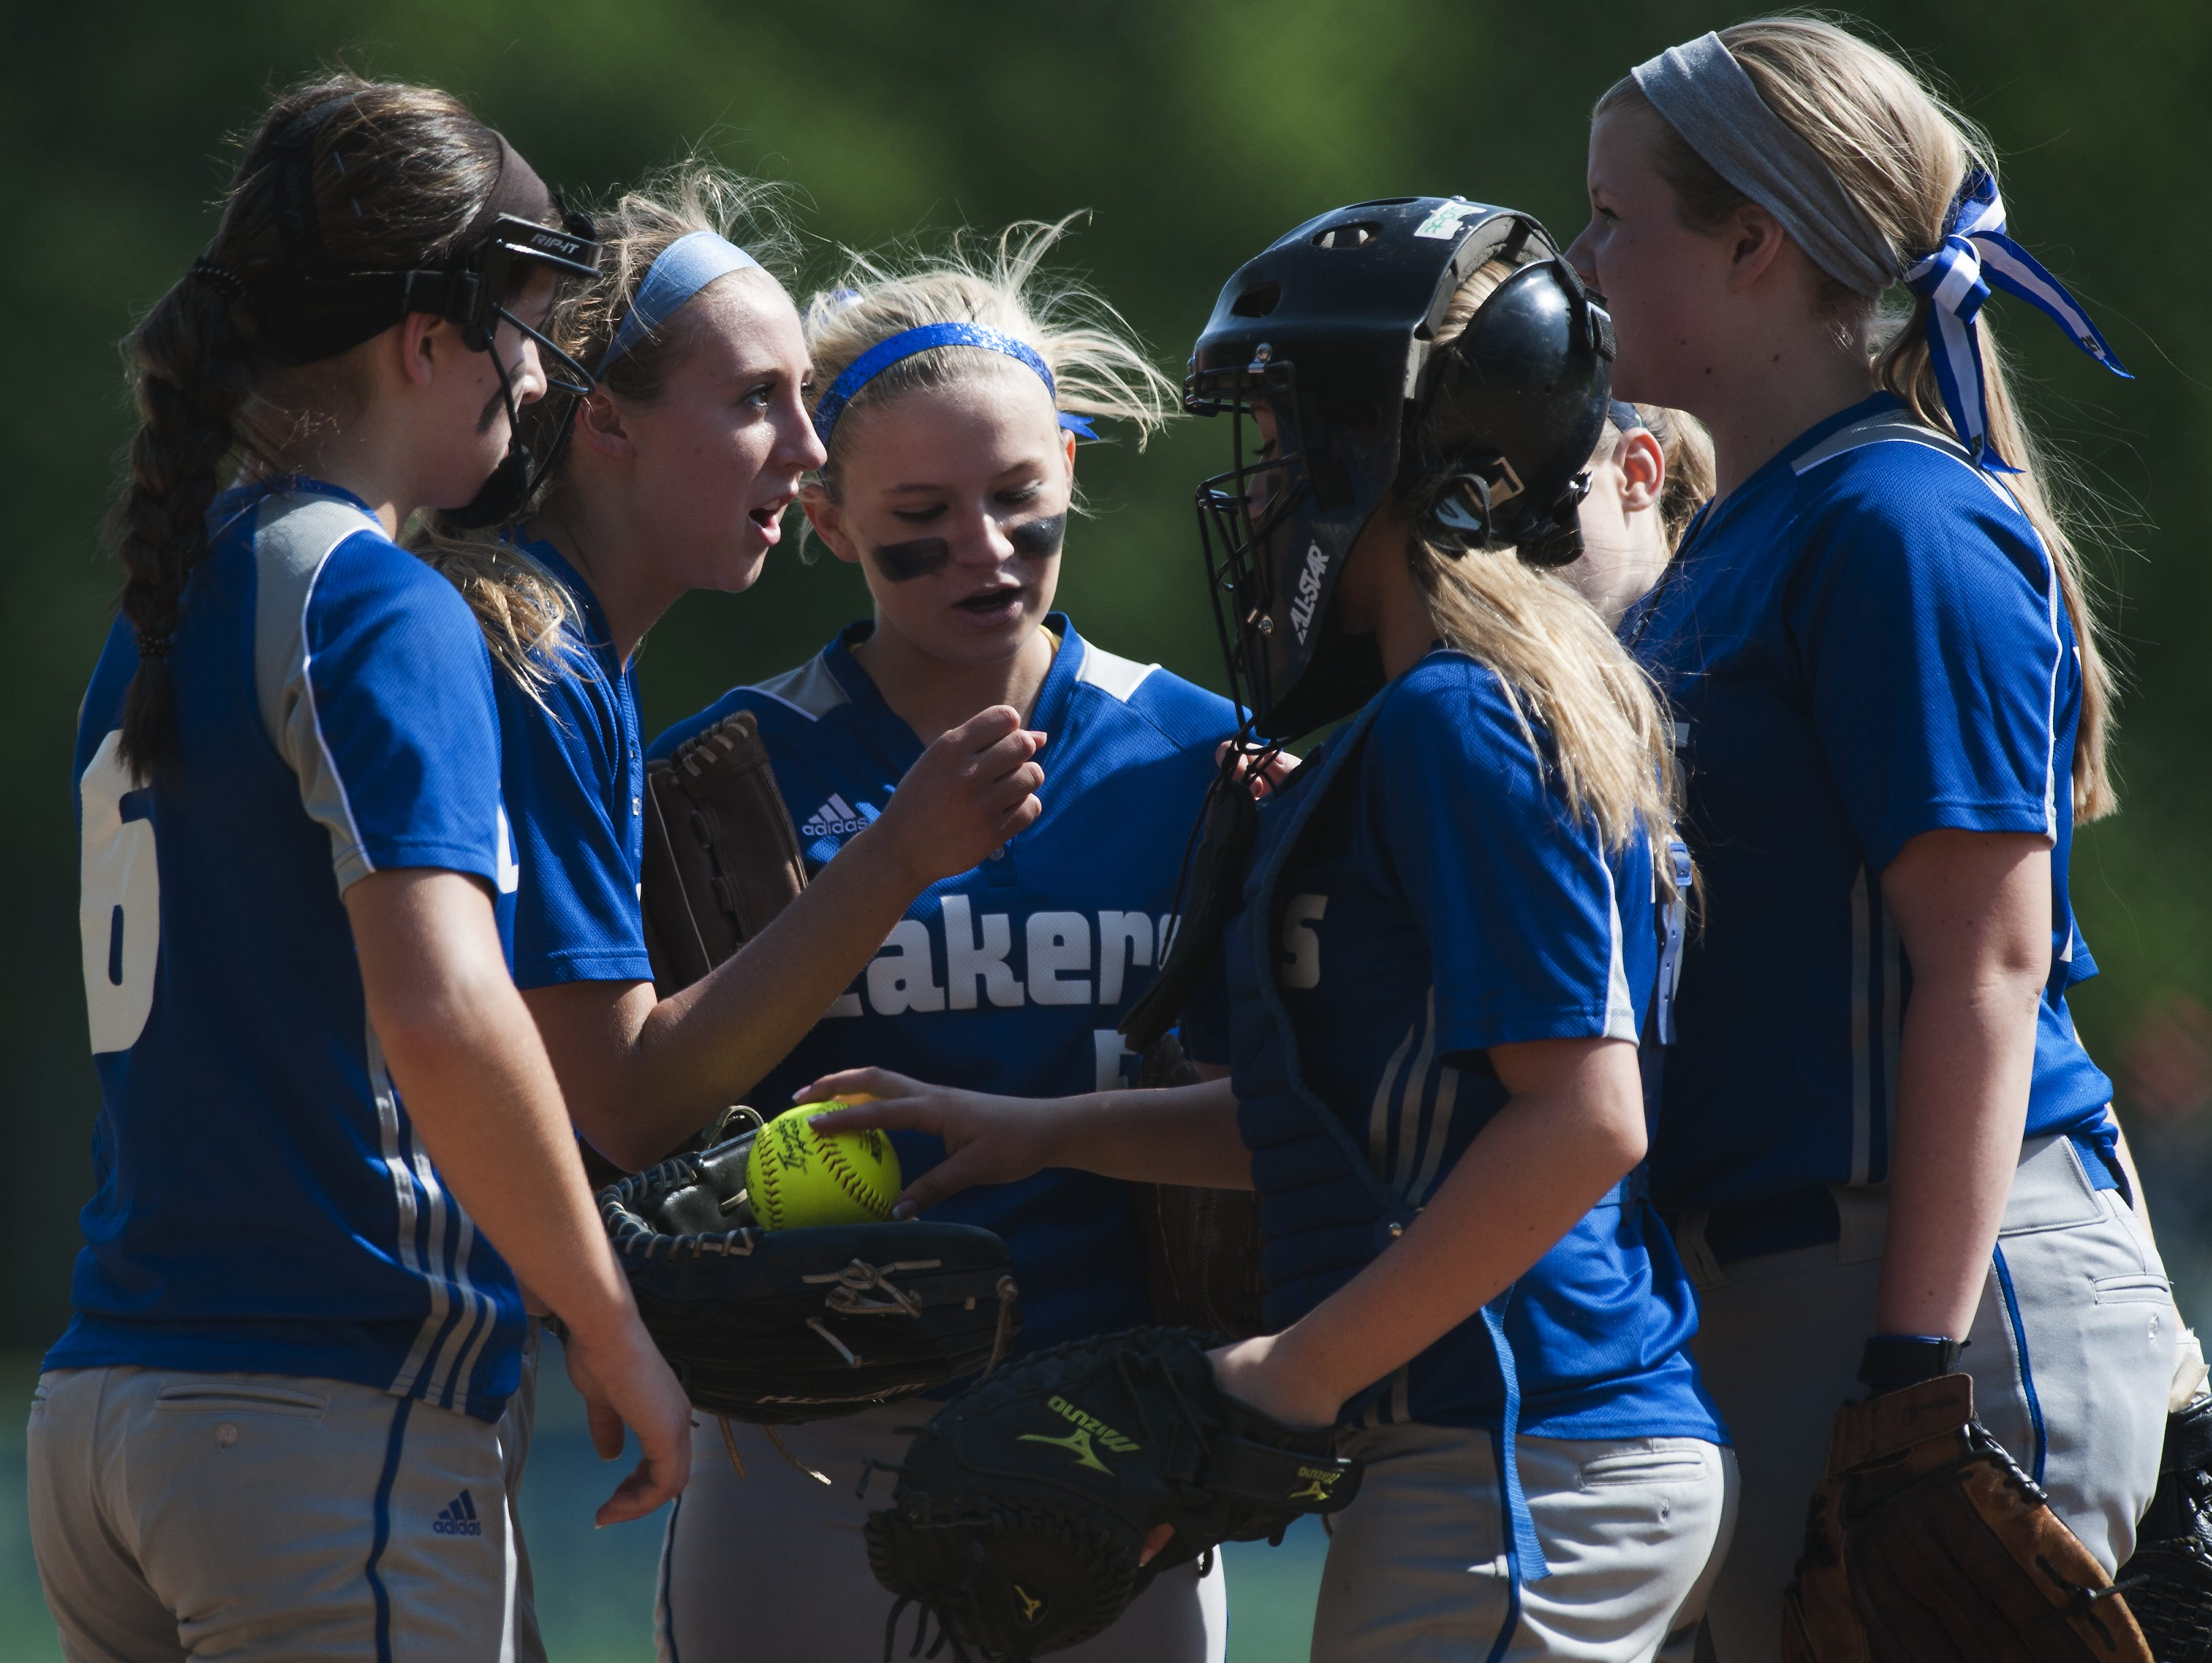 The Colchester infield huddles together before the start of an inning during the girls softball playoff game between the Mount Mansfield Cougars and the Colchester Lakers at Colchester High School on Friday afternoon June 5, 2015 in Colchester.